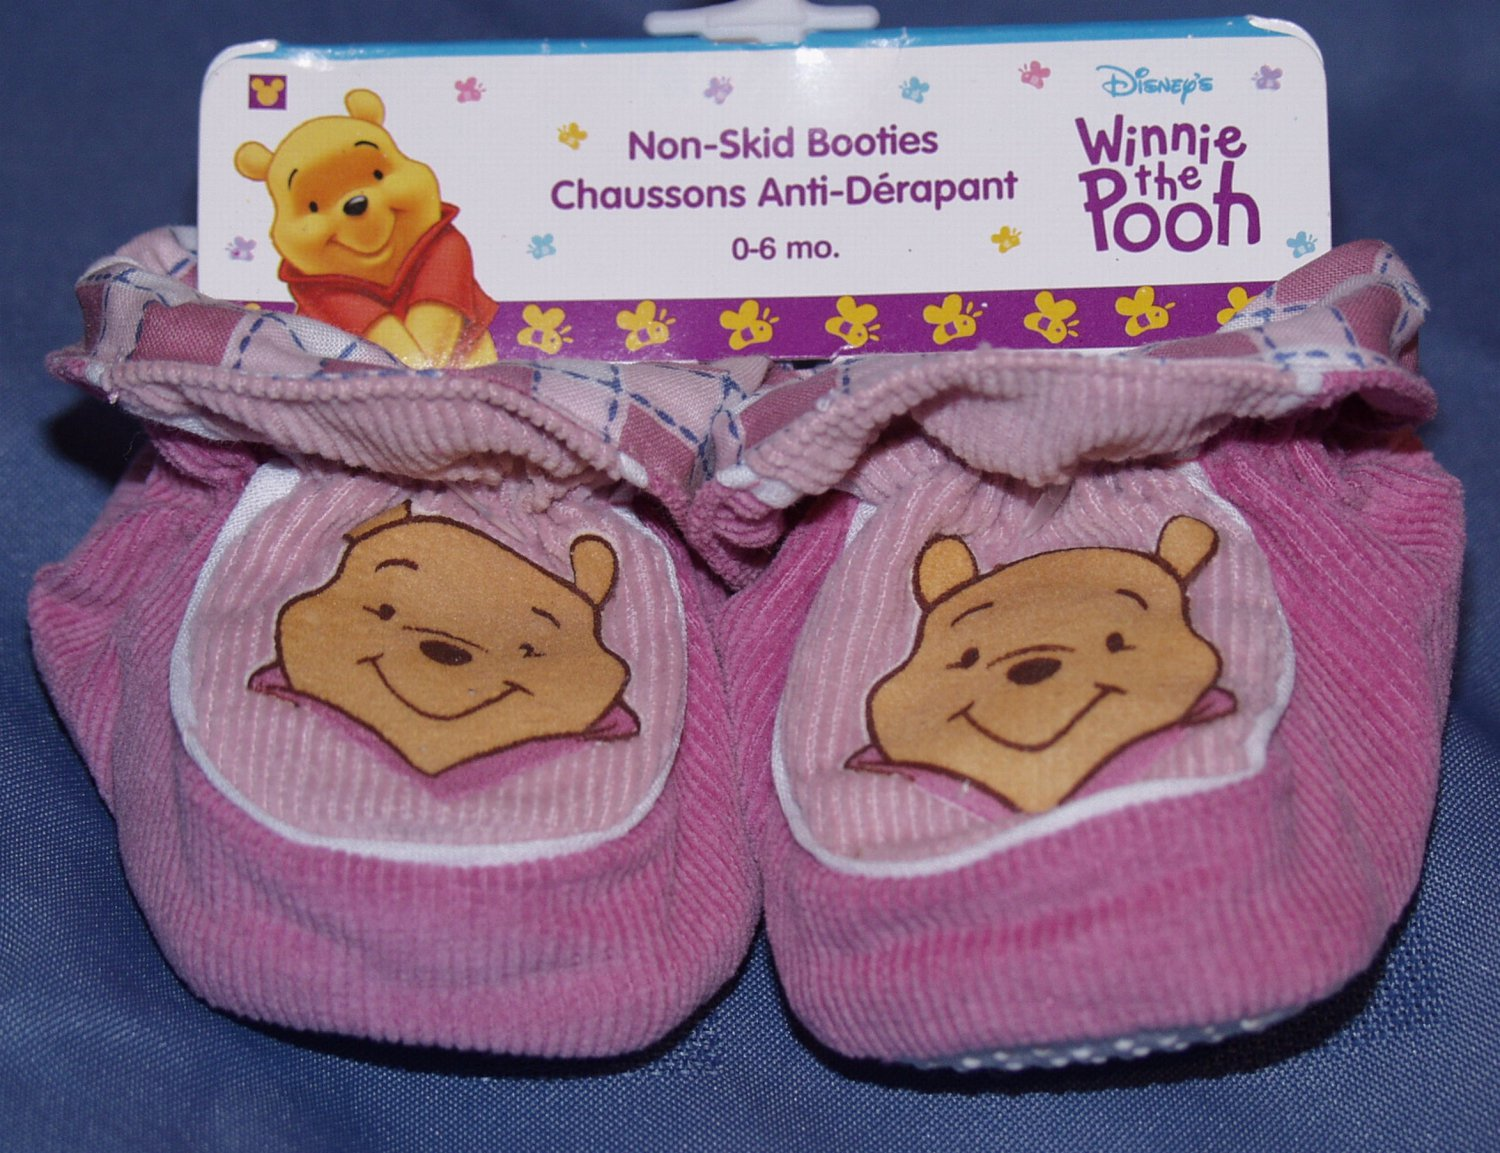 DISNEY WINNIE POOH BEAR Non-Skid BABY BOOTIES  PINK 6-12 months Girl Unisex Crib Shoes LAST ONES